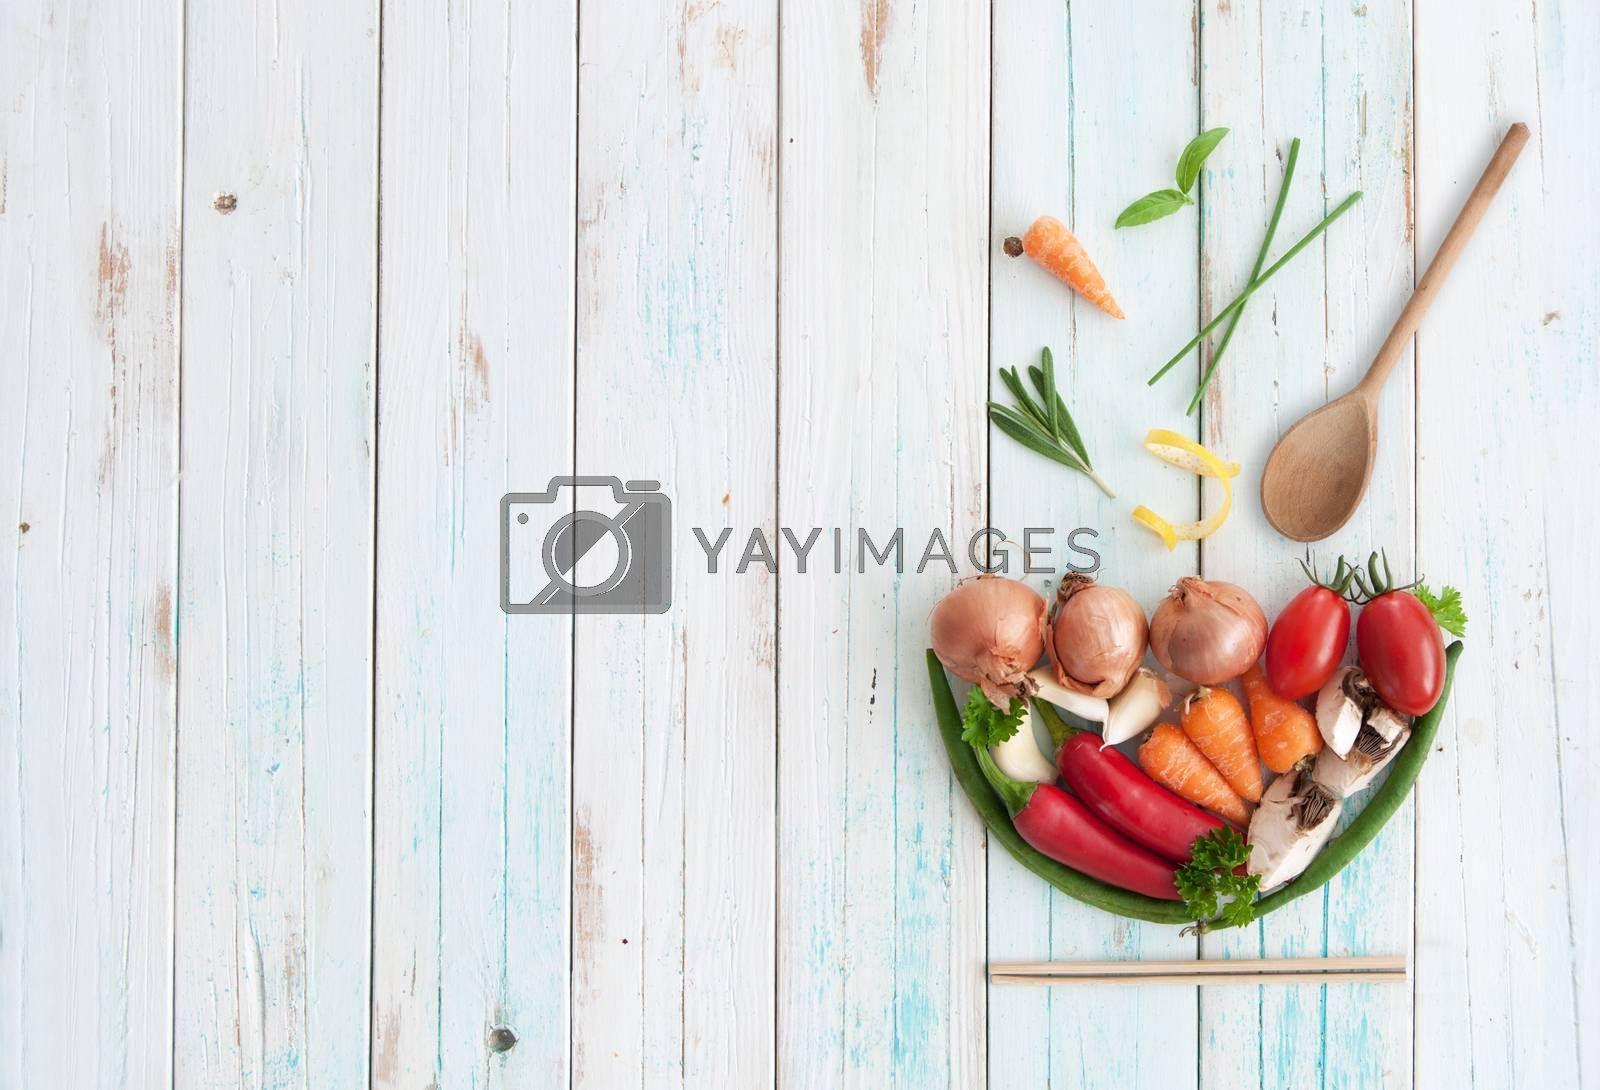 Royalty free image of Soup bowl background by unikpix